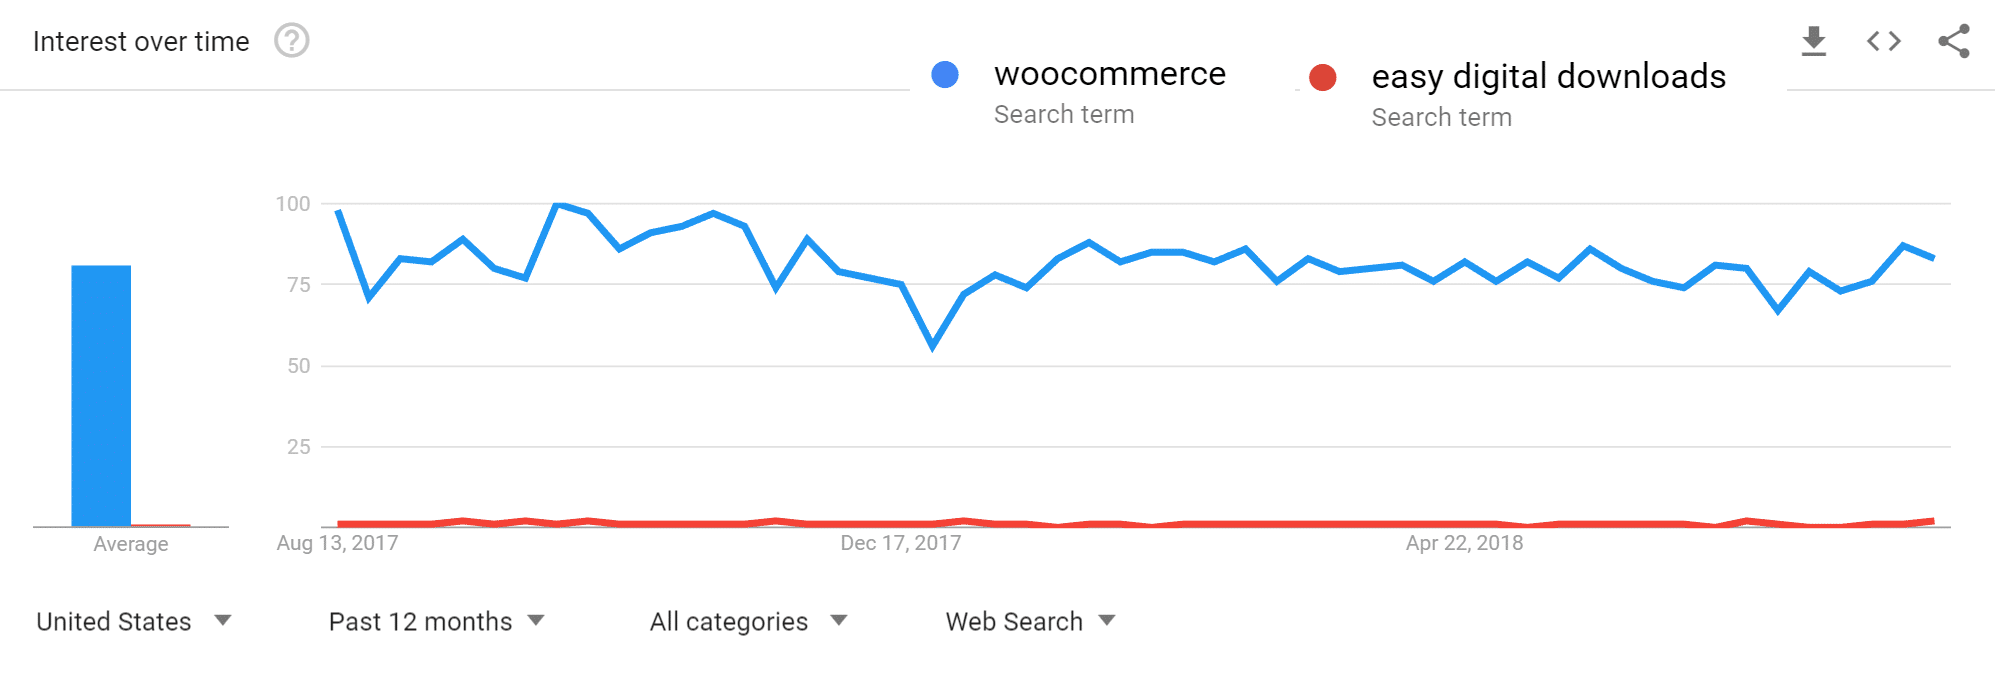 Tendances Google - WooCommerce vs Easy Digital Downloads